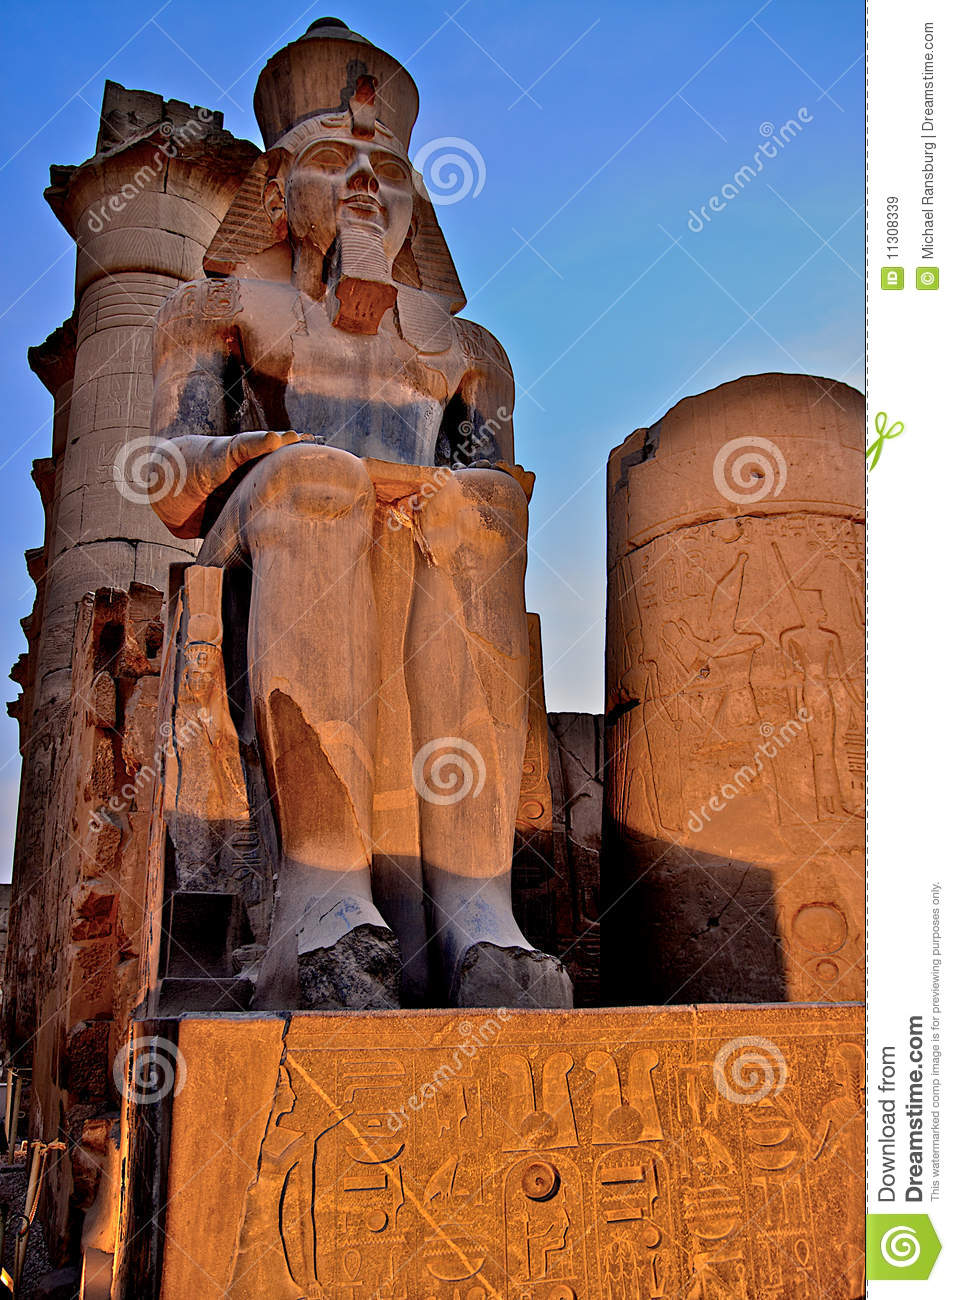 Architecture antique en Egypte